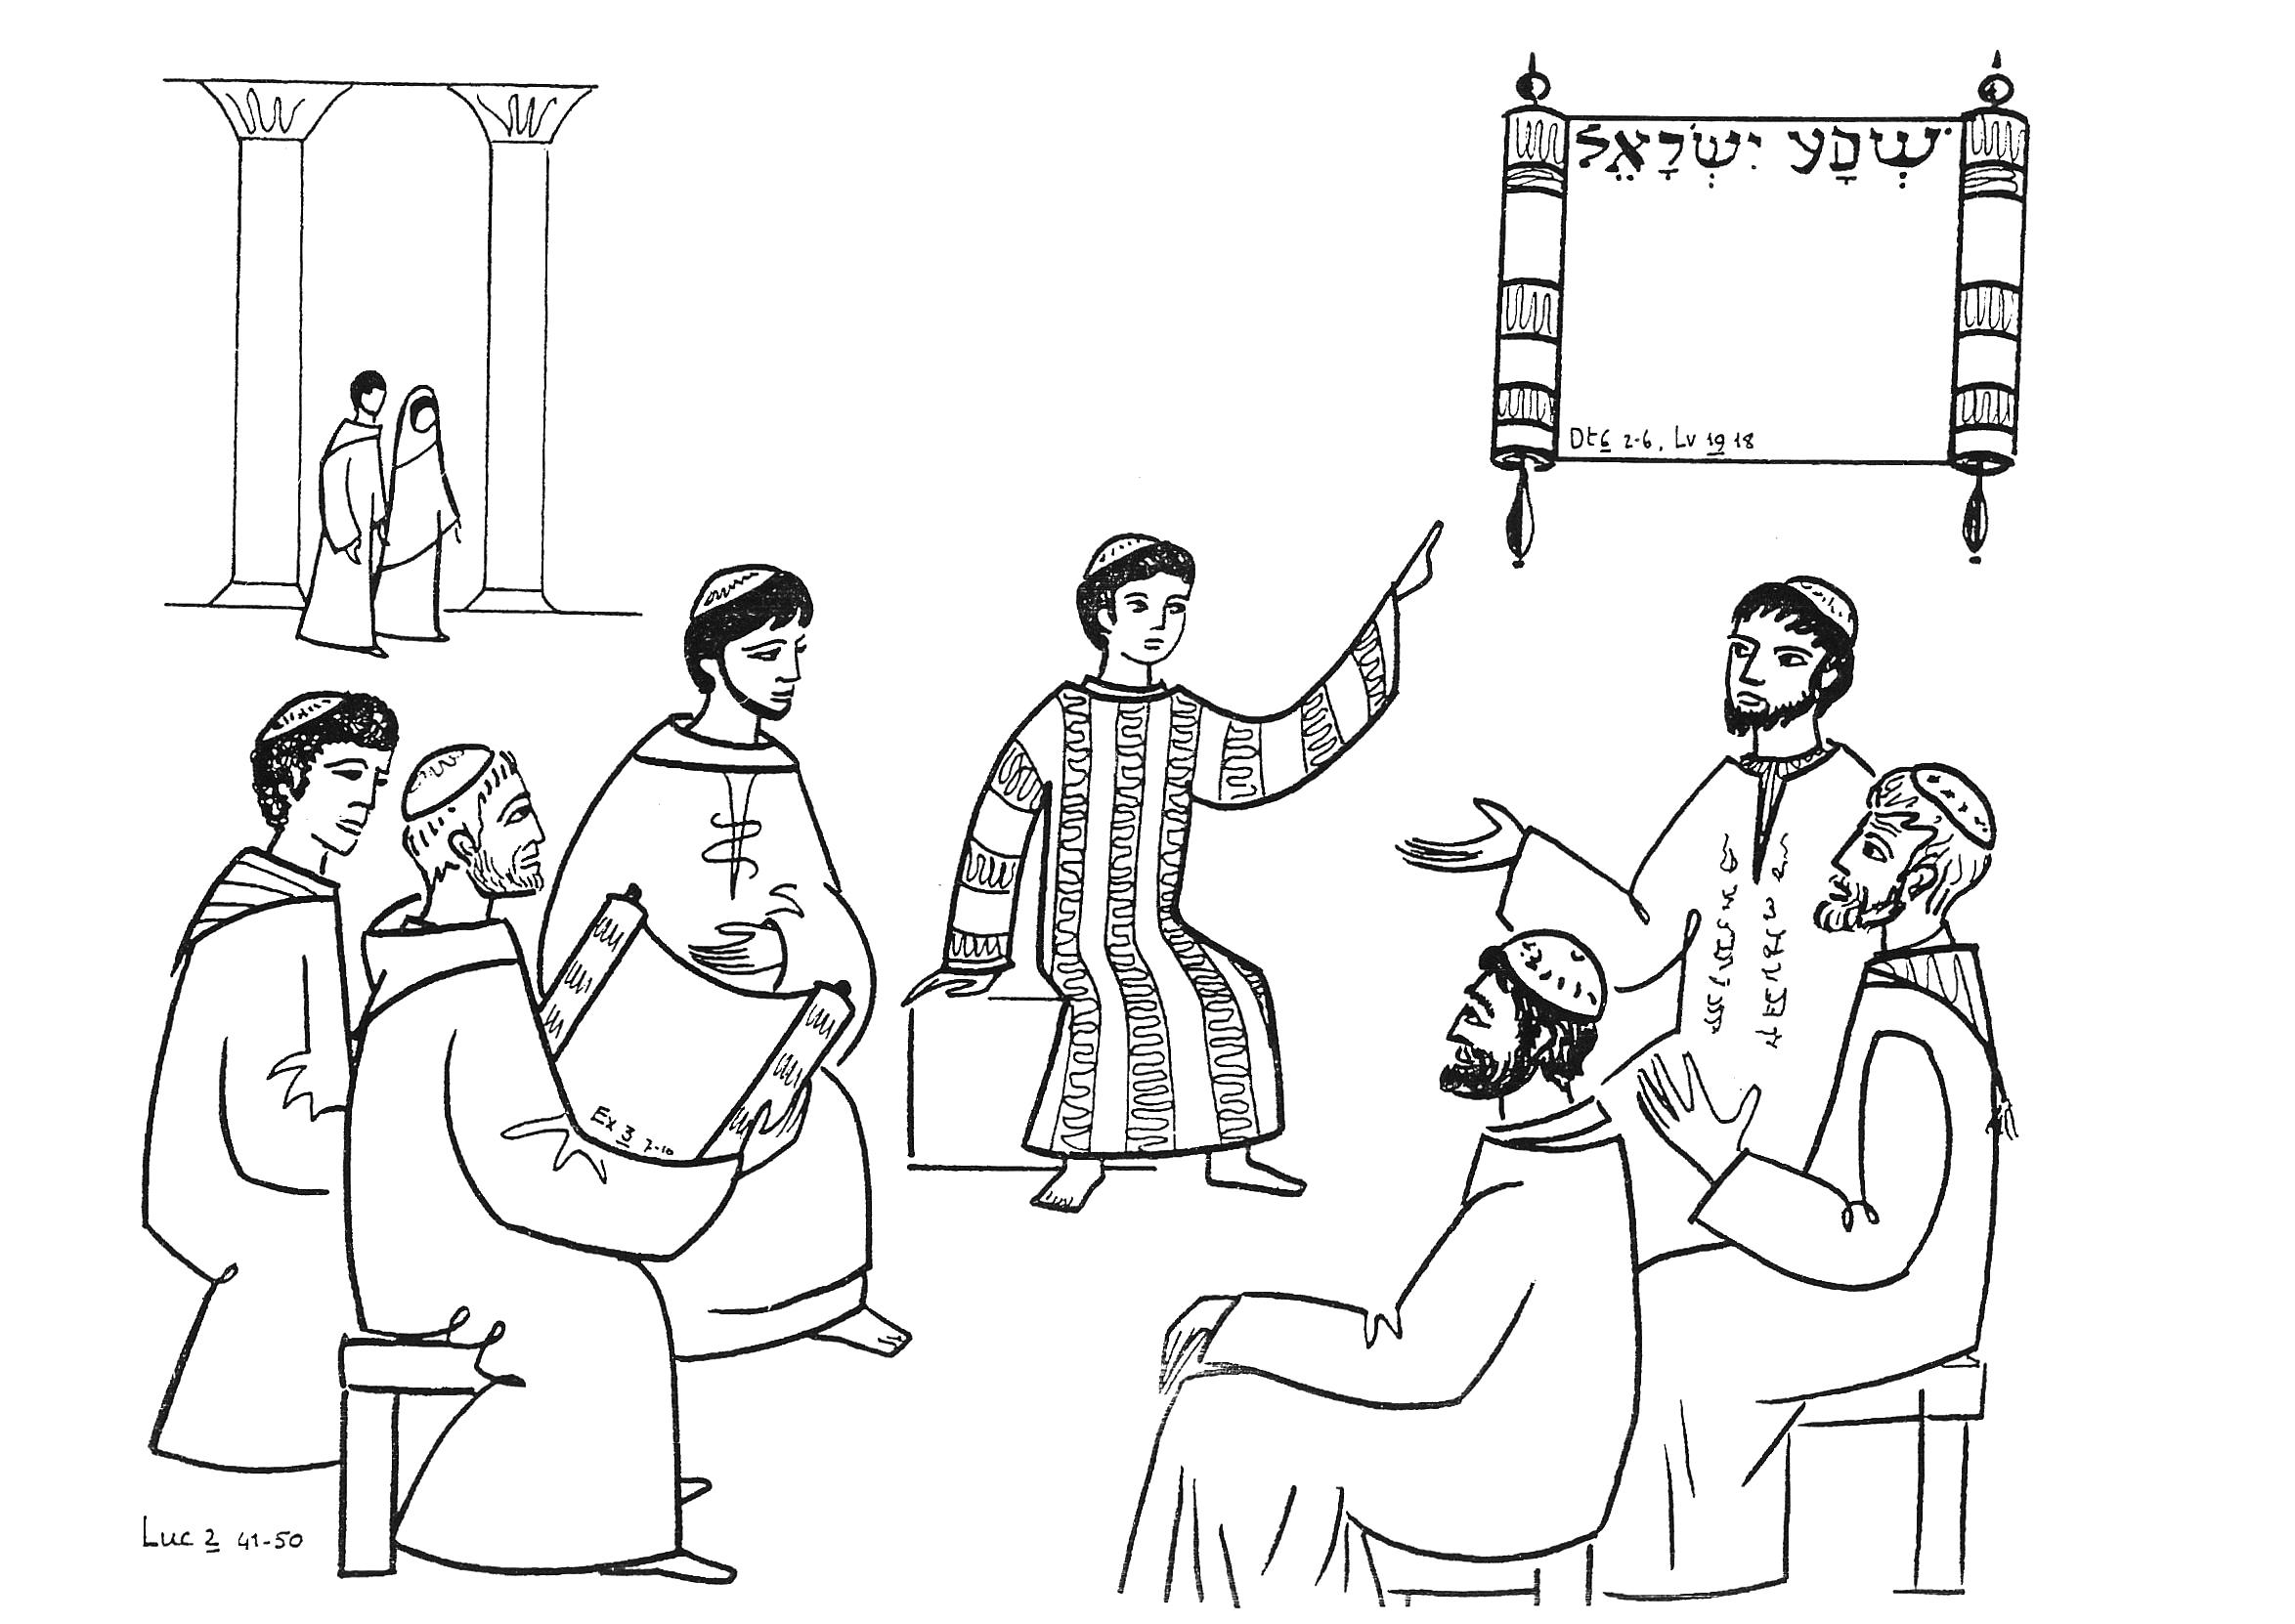 12 year old jesus in the temple coloring page photo - 1